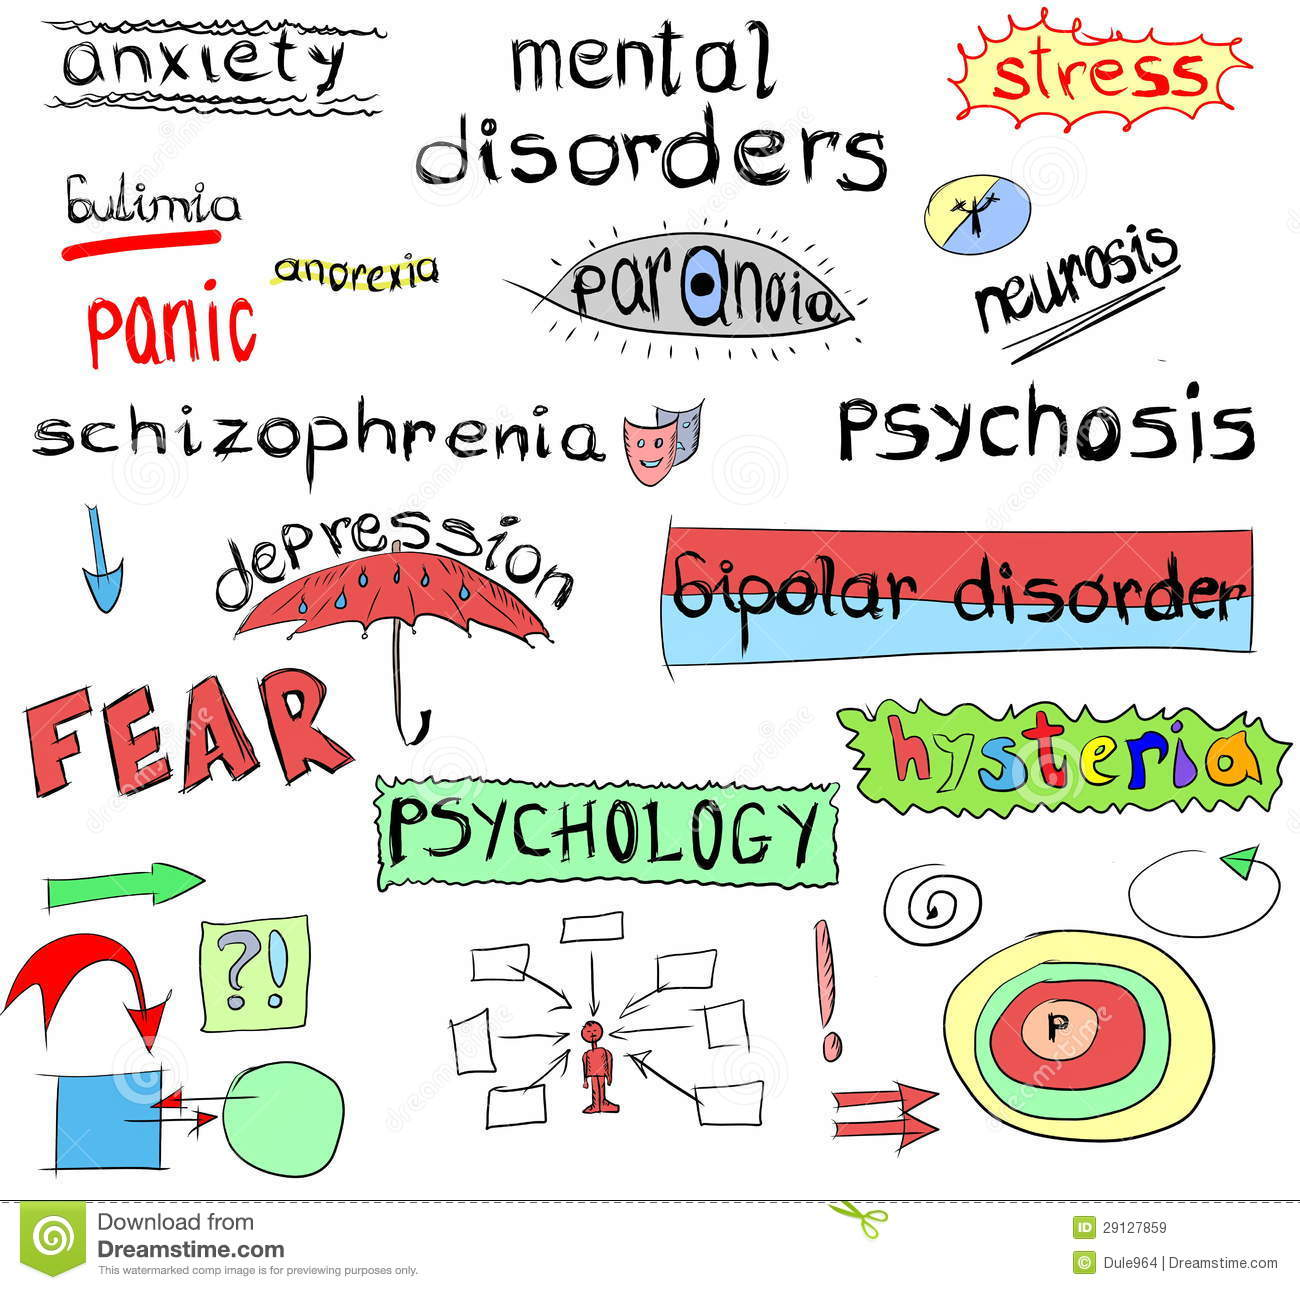 mental health dictionary psychiatric terminology